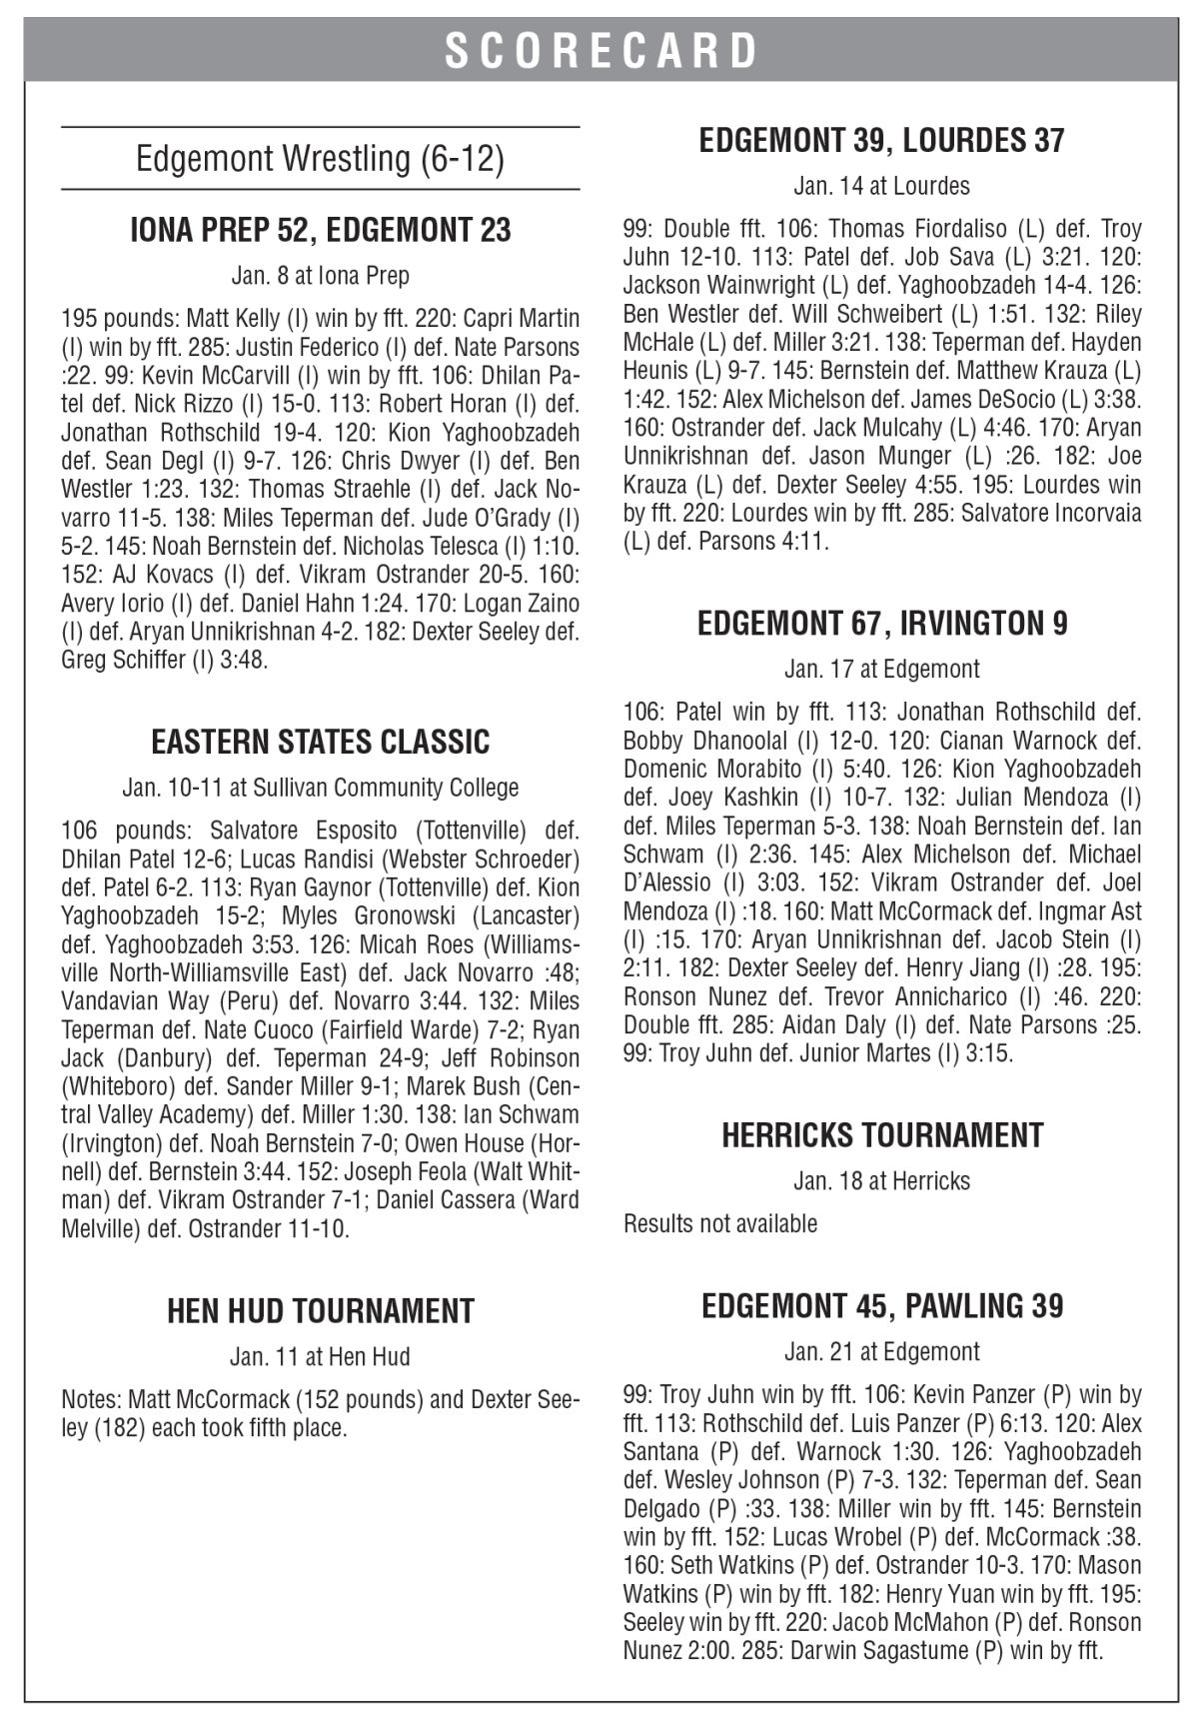 Edgemont wrestling boxscore 1/24 issue